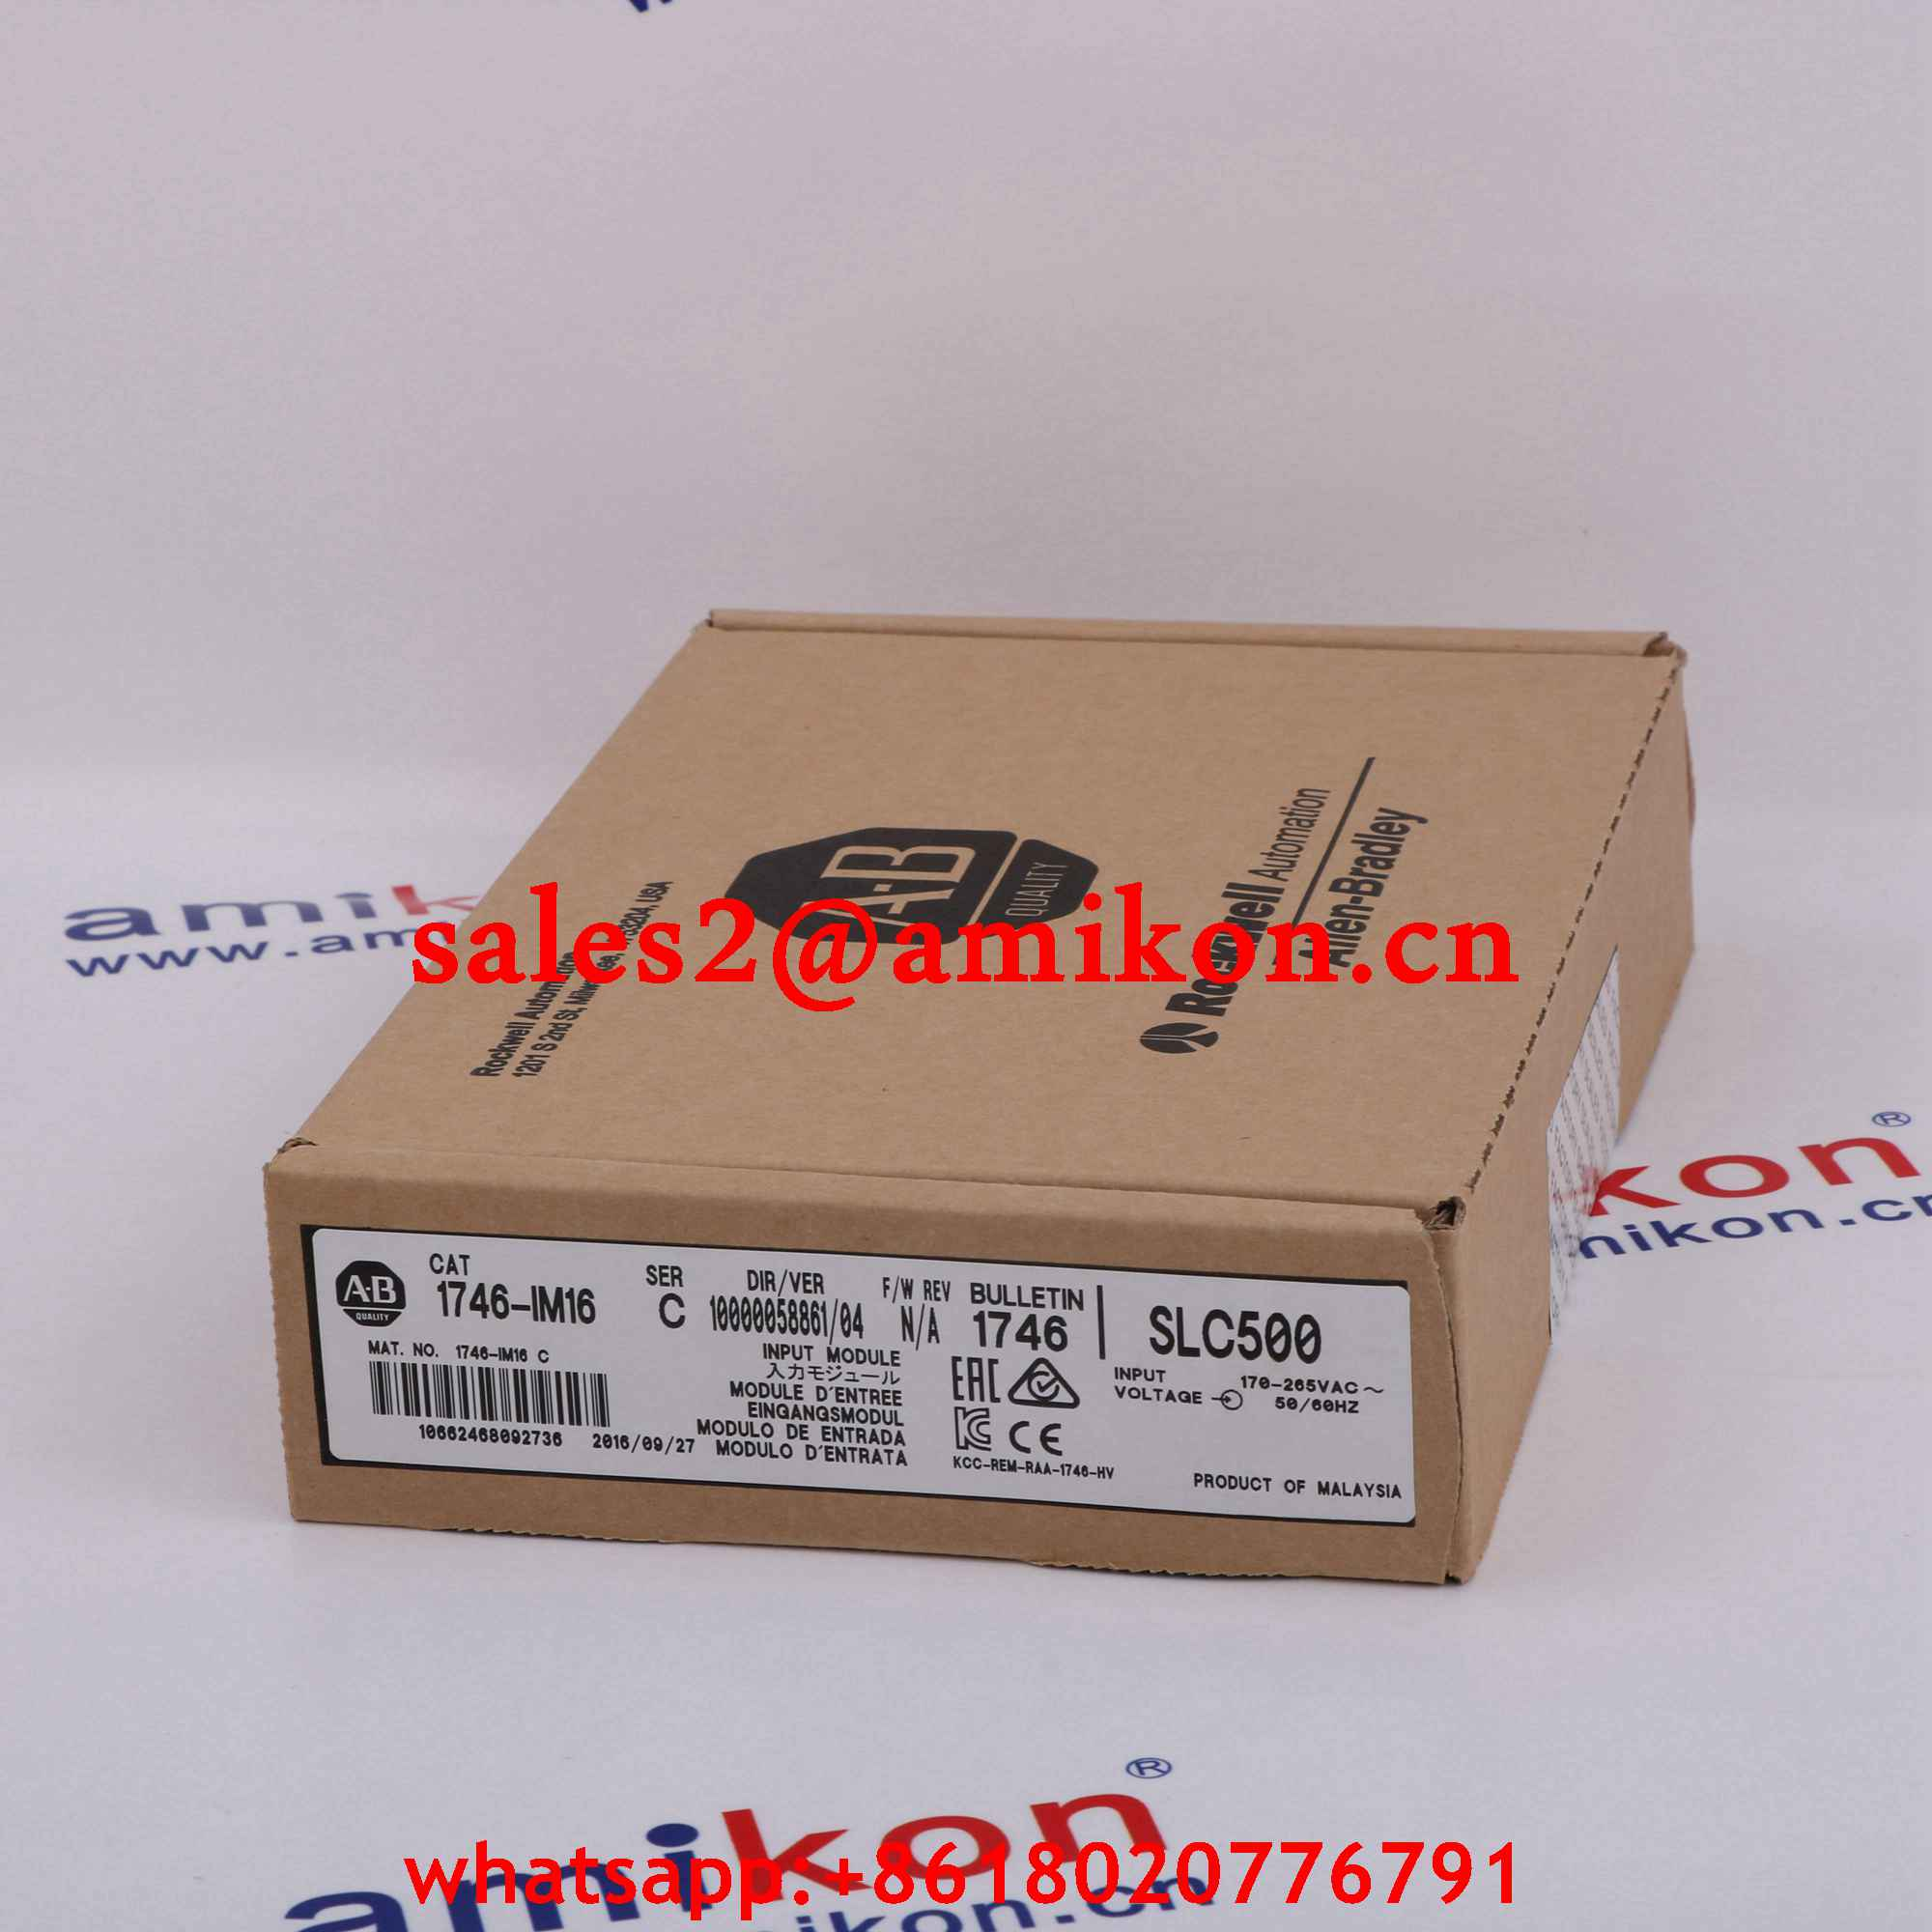 EMERSON WESTINGHOUSE/OVATION 5X00225G01 NEW IN STOCK DISOUNT SALE